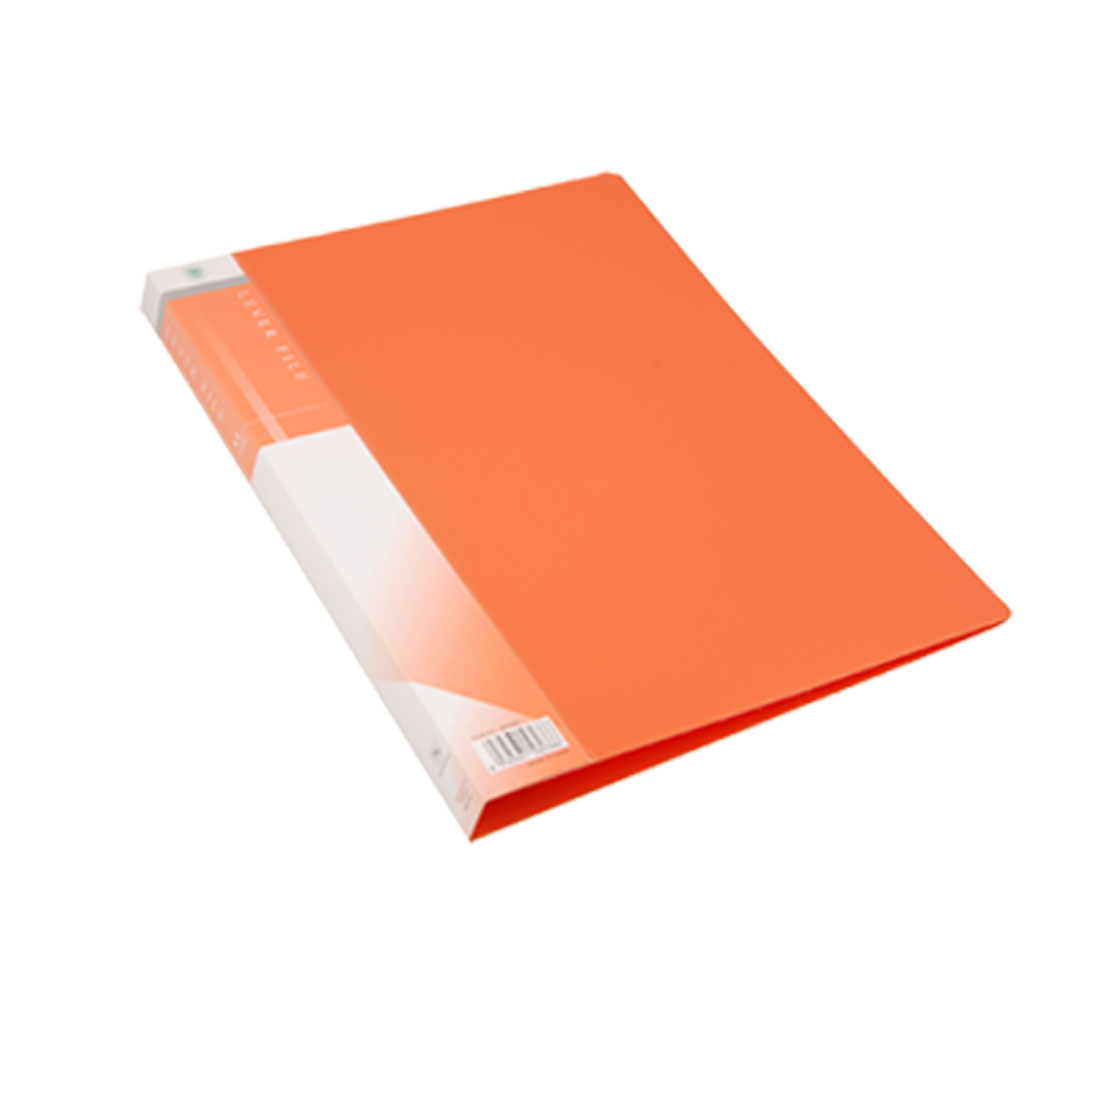 Size A4 Orange Plastic Single Lever Clip File Folder